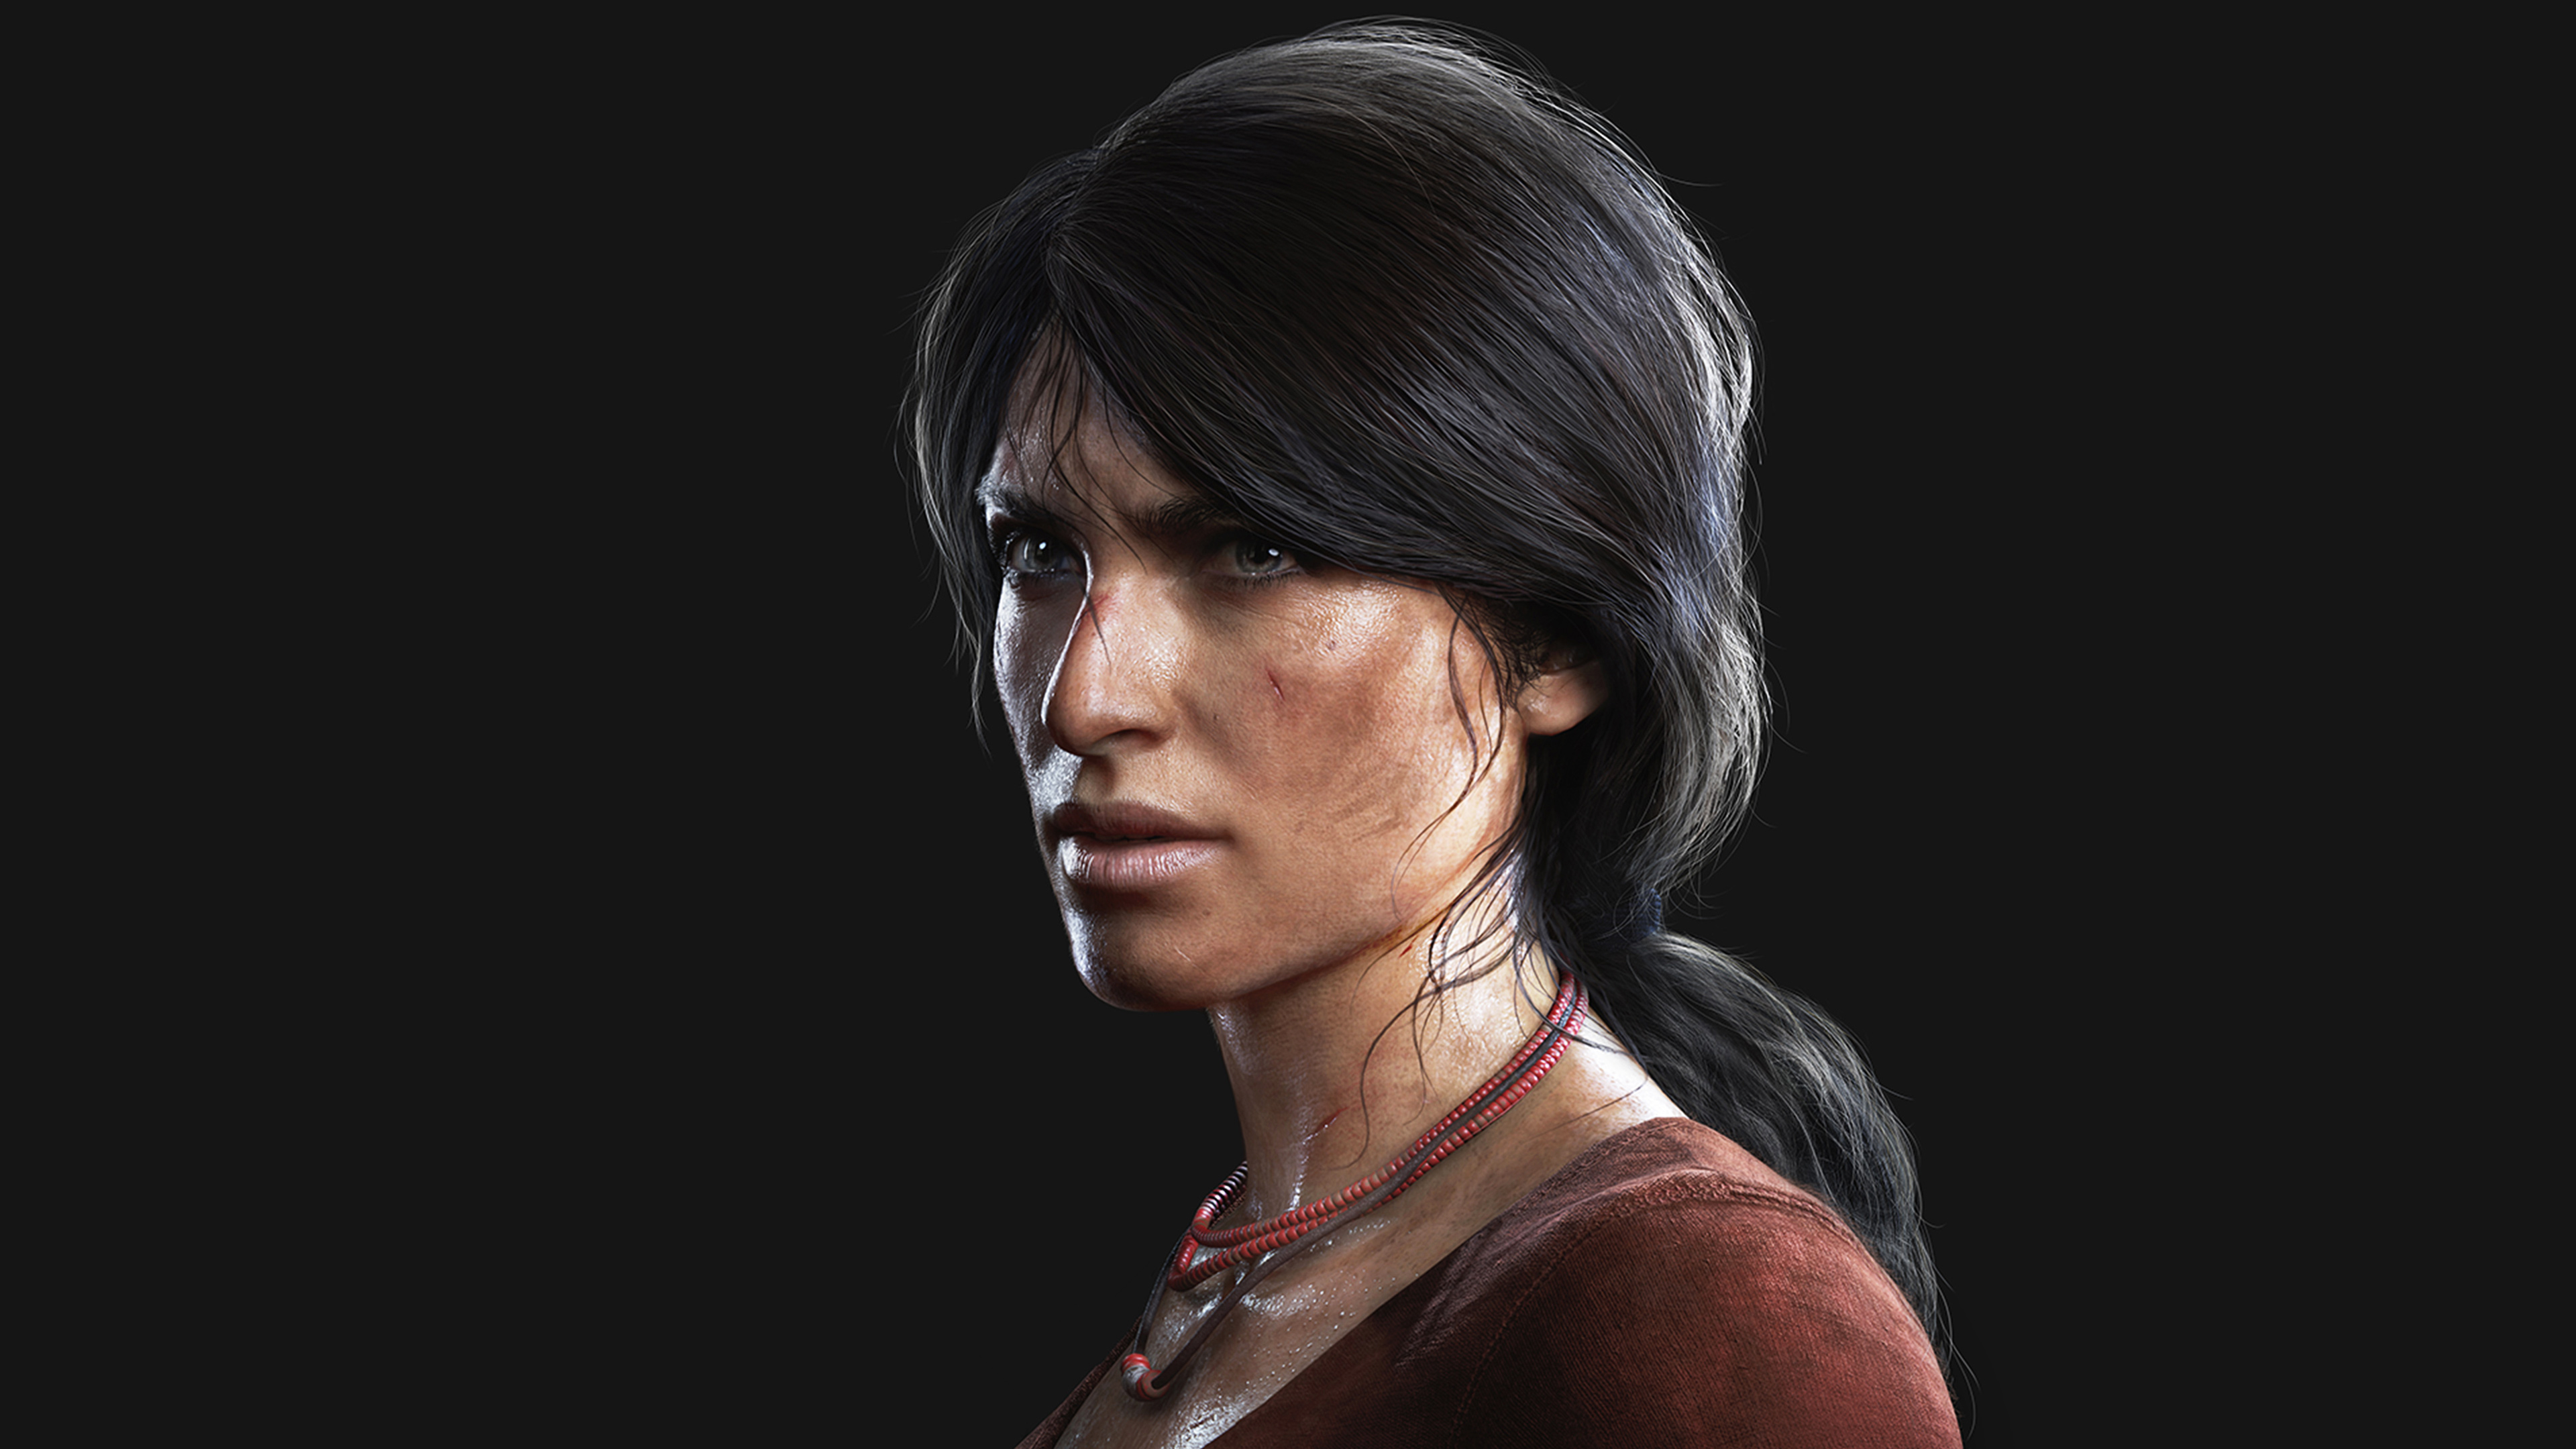 https://fullhdpictures.com/wp-content/uploads/2017/08/Uncharted-The-Lost-Legacy-Chloe-Frazer-Photos.jpg